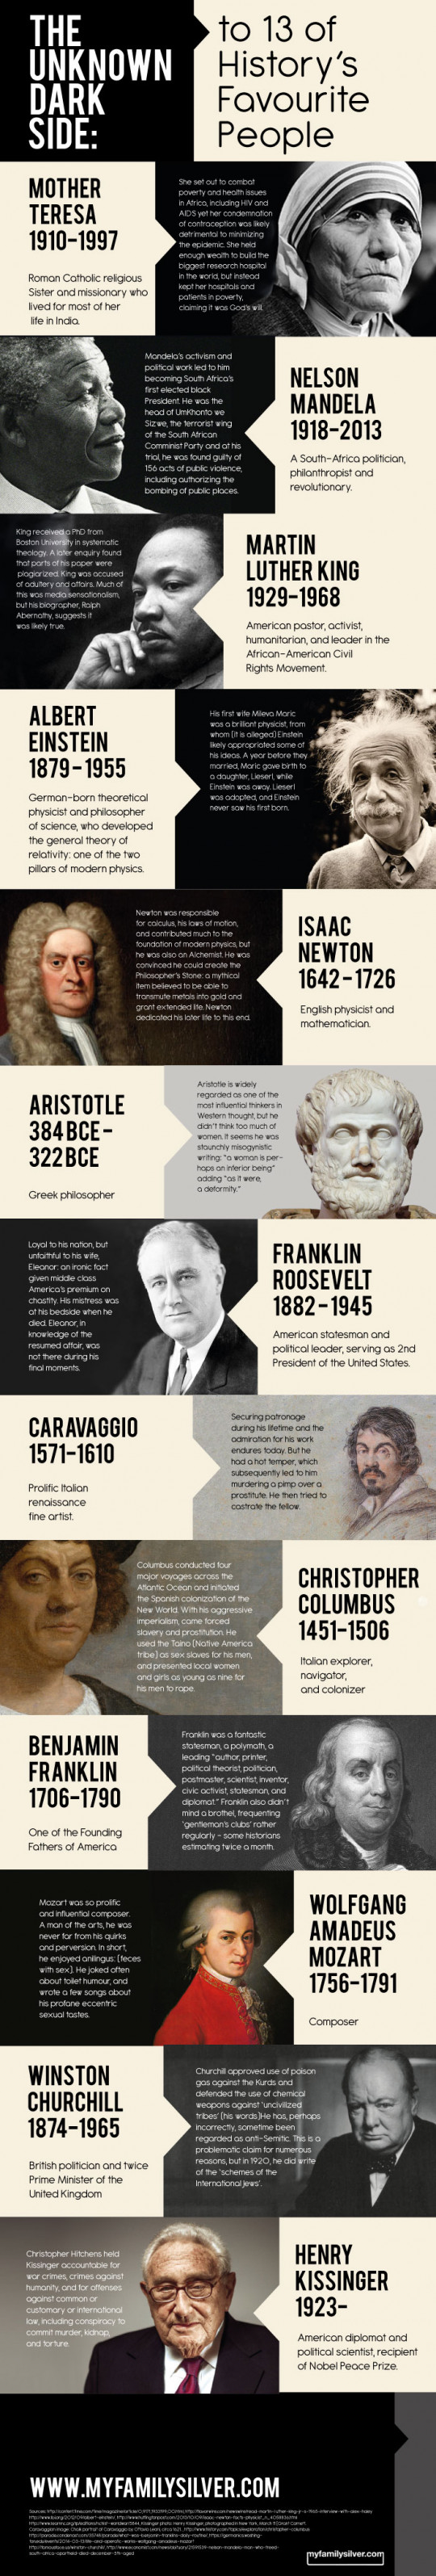 The Darkside of 13 of History